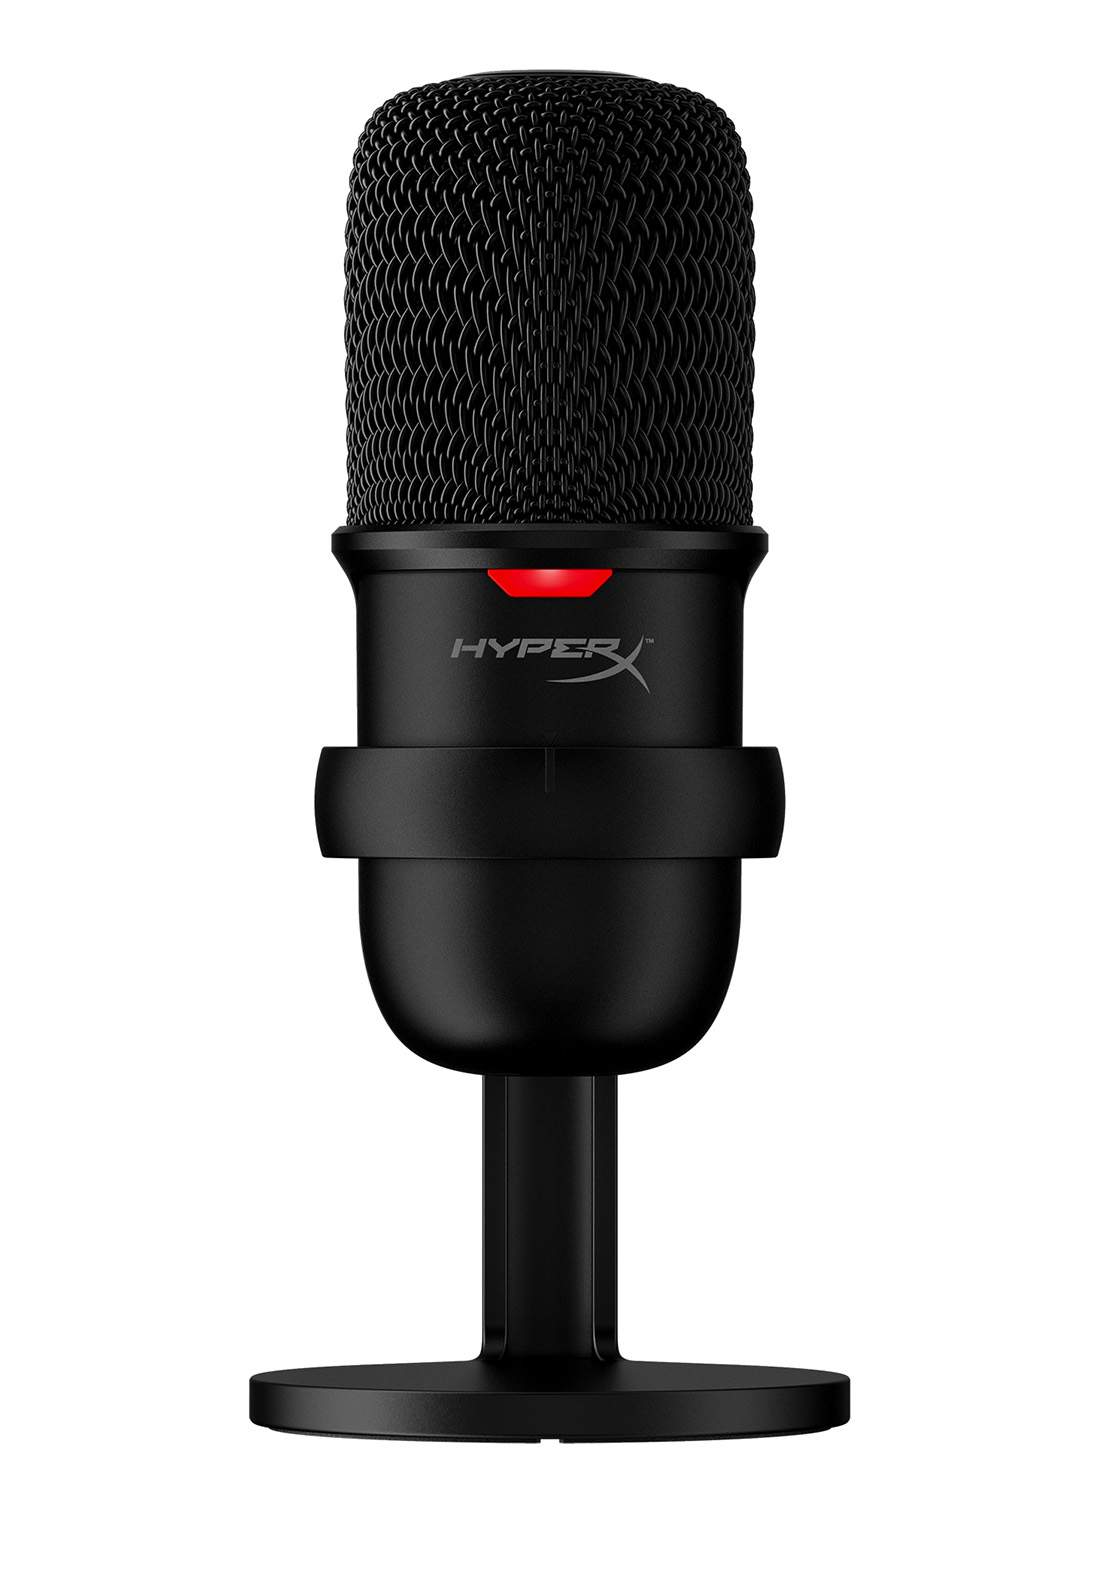 Hyperx Solocast Wired Cardioid Usb Condenser Gaming Microphone